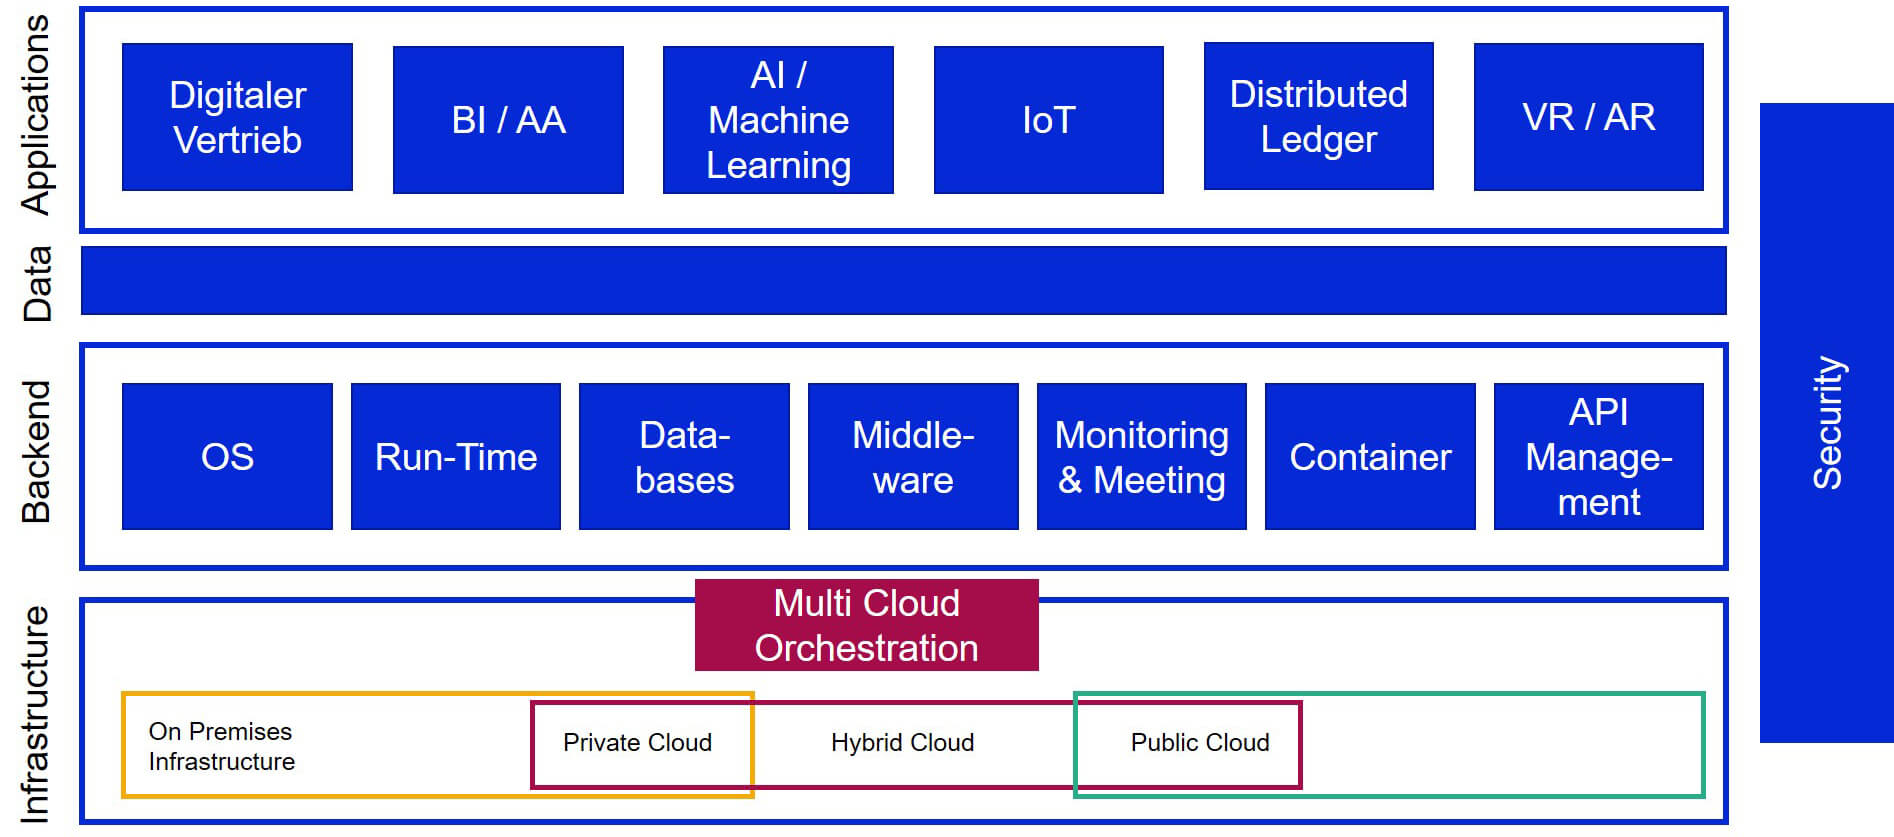 Cloud-Strategie, matrix technology AG, Public Cloud, Private Cloud, On-Premises, Hybrid Cloud